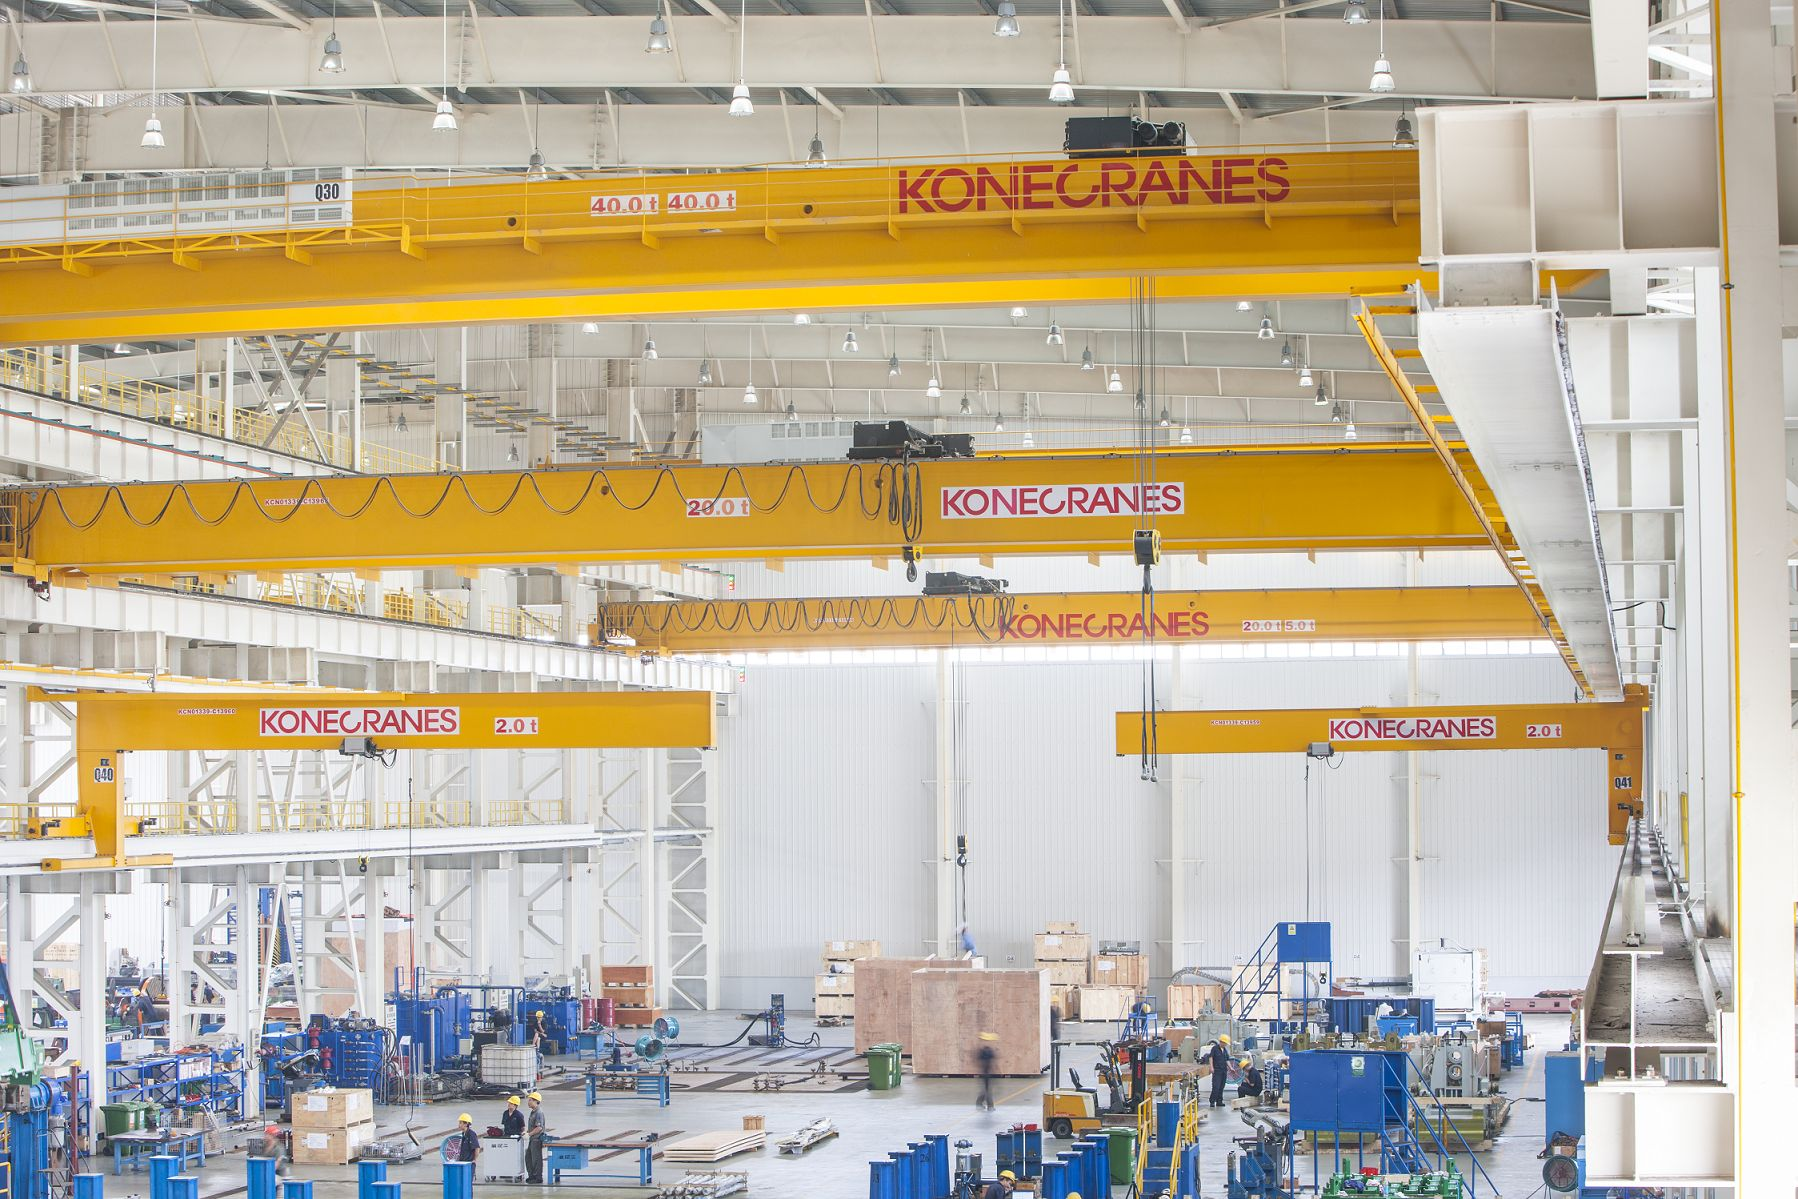 Konecranes_Industrial_Cranes_Operating_in_Manufacturing_Sector.jpeg